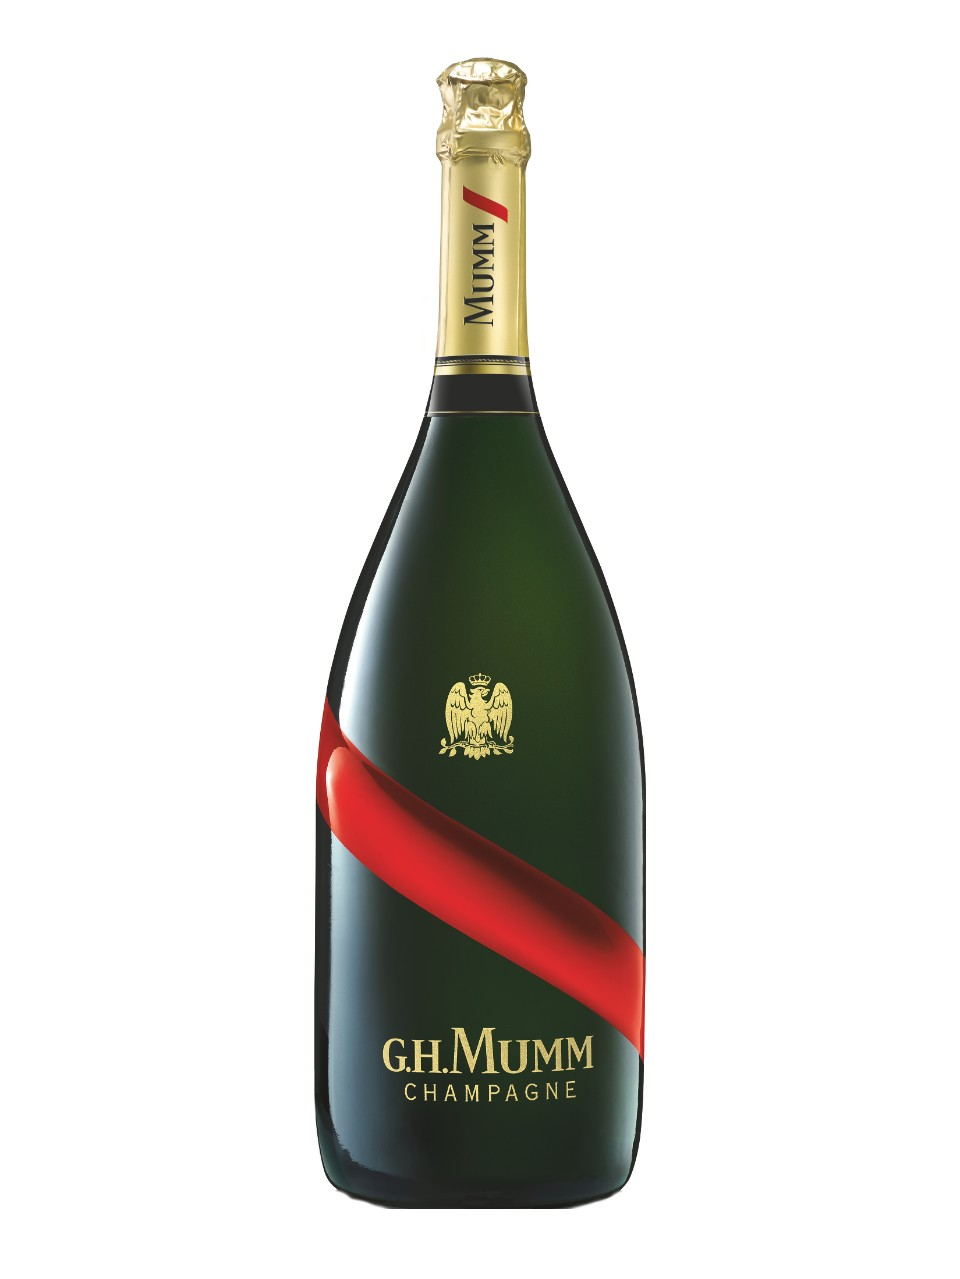 Mumm Cordon Rouge Brut Champagne from LCBO